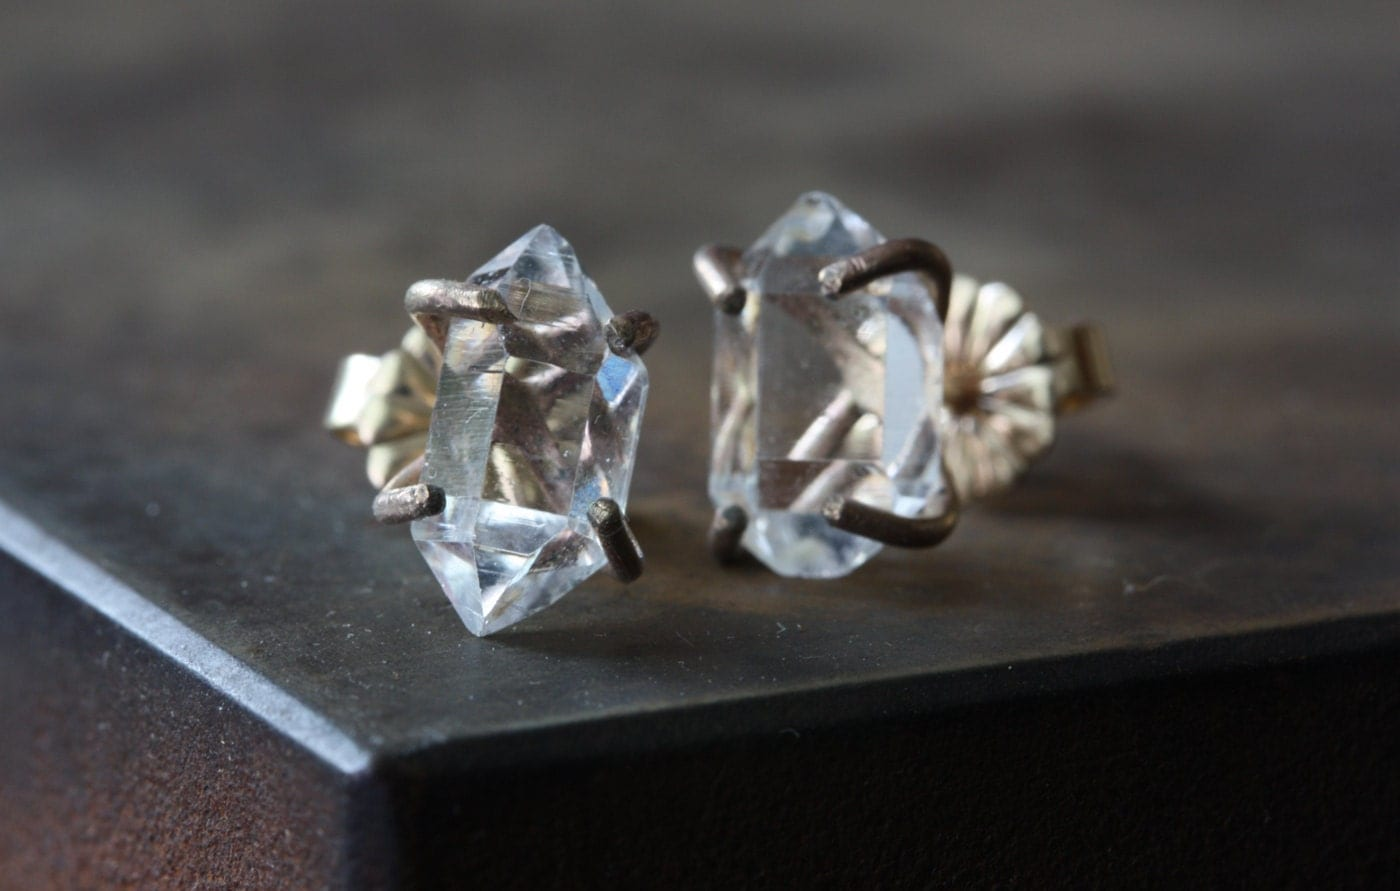 Herkimer Diamond Earrings 14kt Gold As Seen In Bust. Emerald Bracelet. Where To Buy Anklets. Jazz Bands. Fox Pendant. Black Pearl Wedding Rings. Imperfect Diamond. Contemporary Jewellery. Bangles Diamond